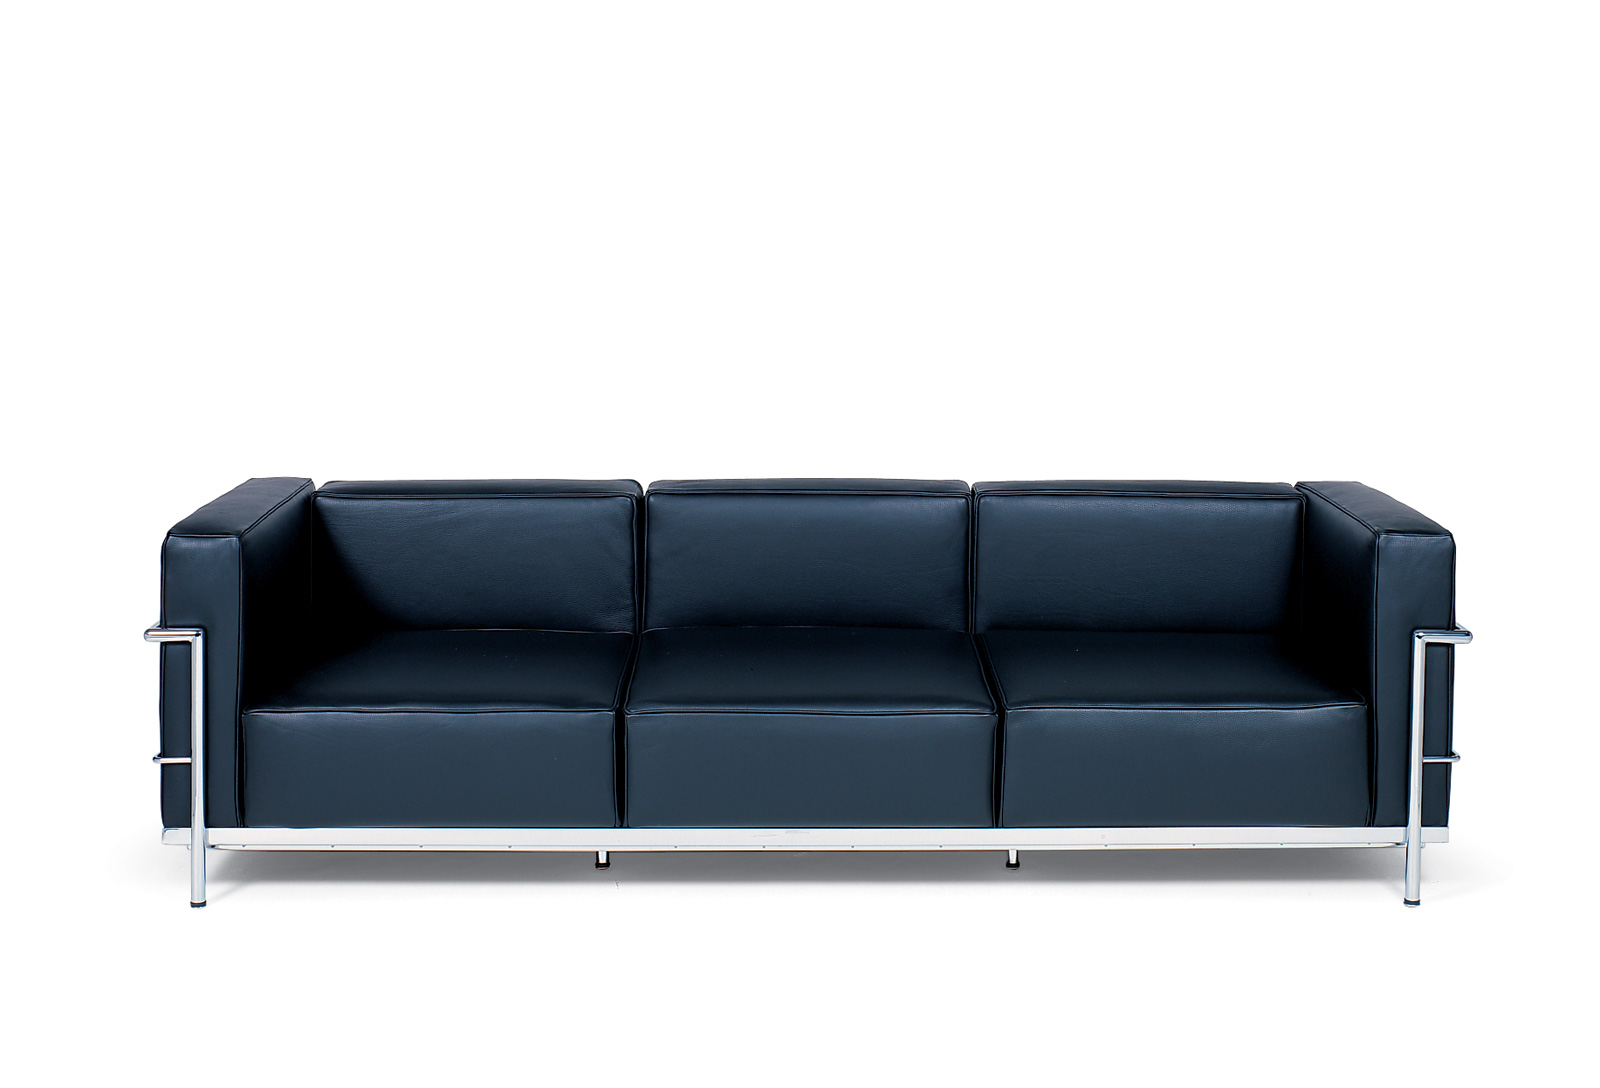 Shop le corbusier grande confort 82 sofa lc3b3 for only 1575 for Sofas gran confort